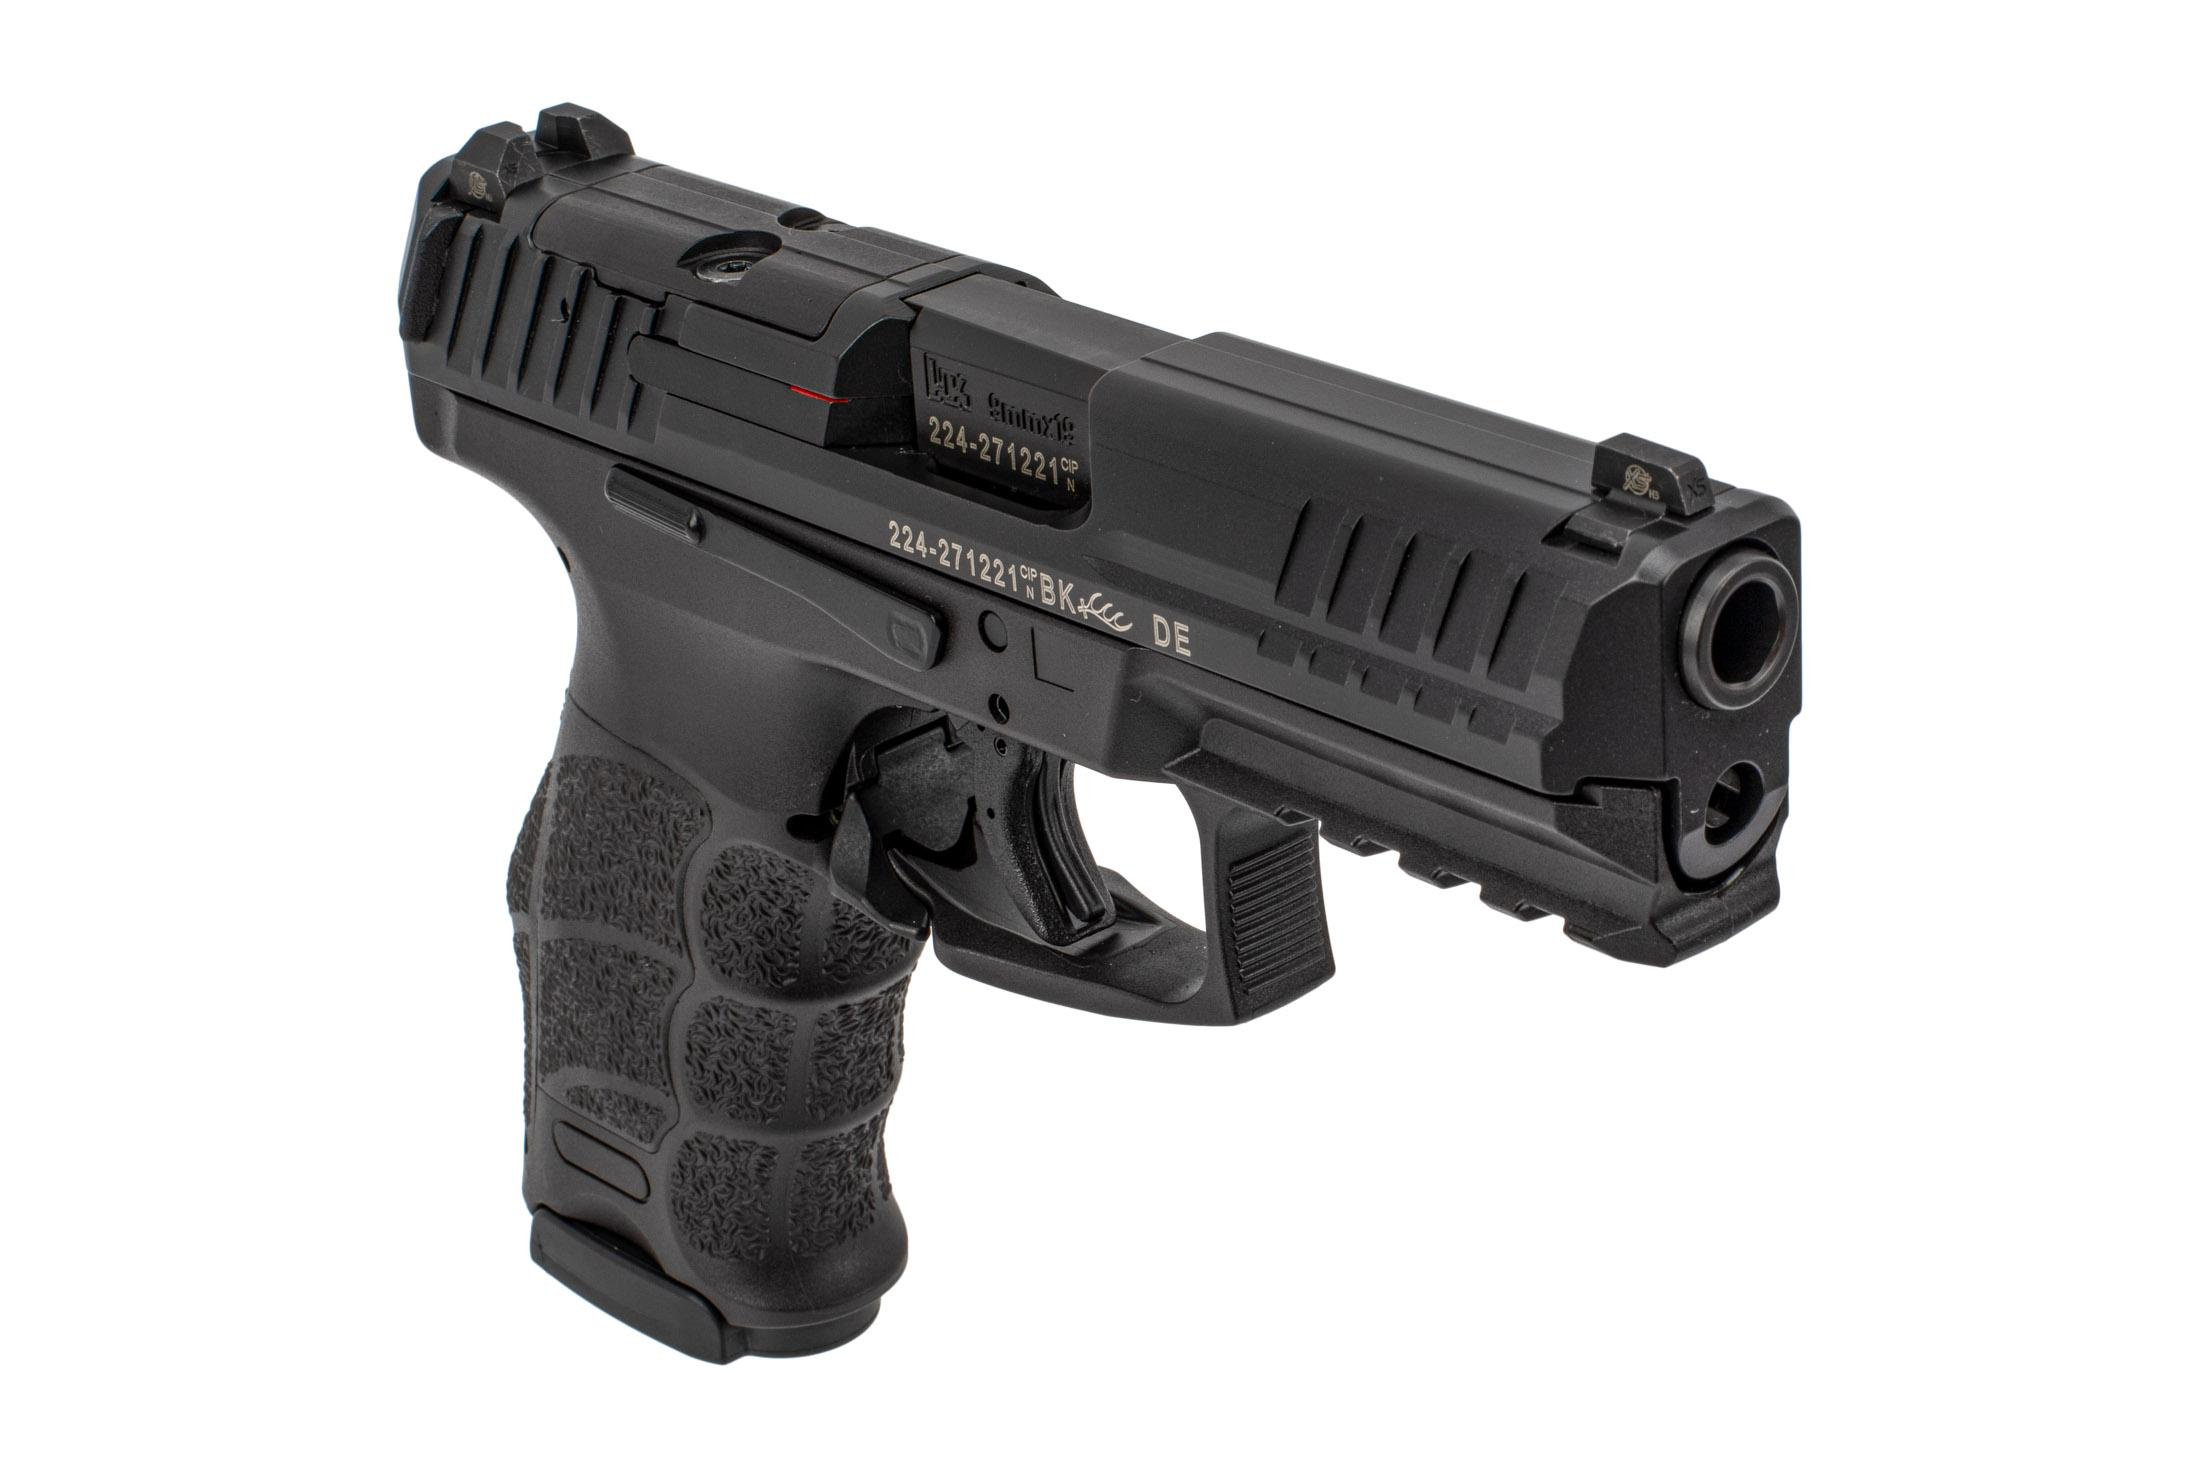 Heckler & Koch VP9 Optics Ready 9mm pistol comes with steel three dot sights